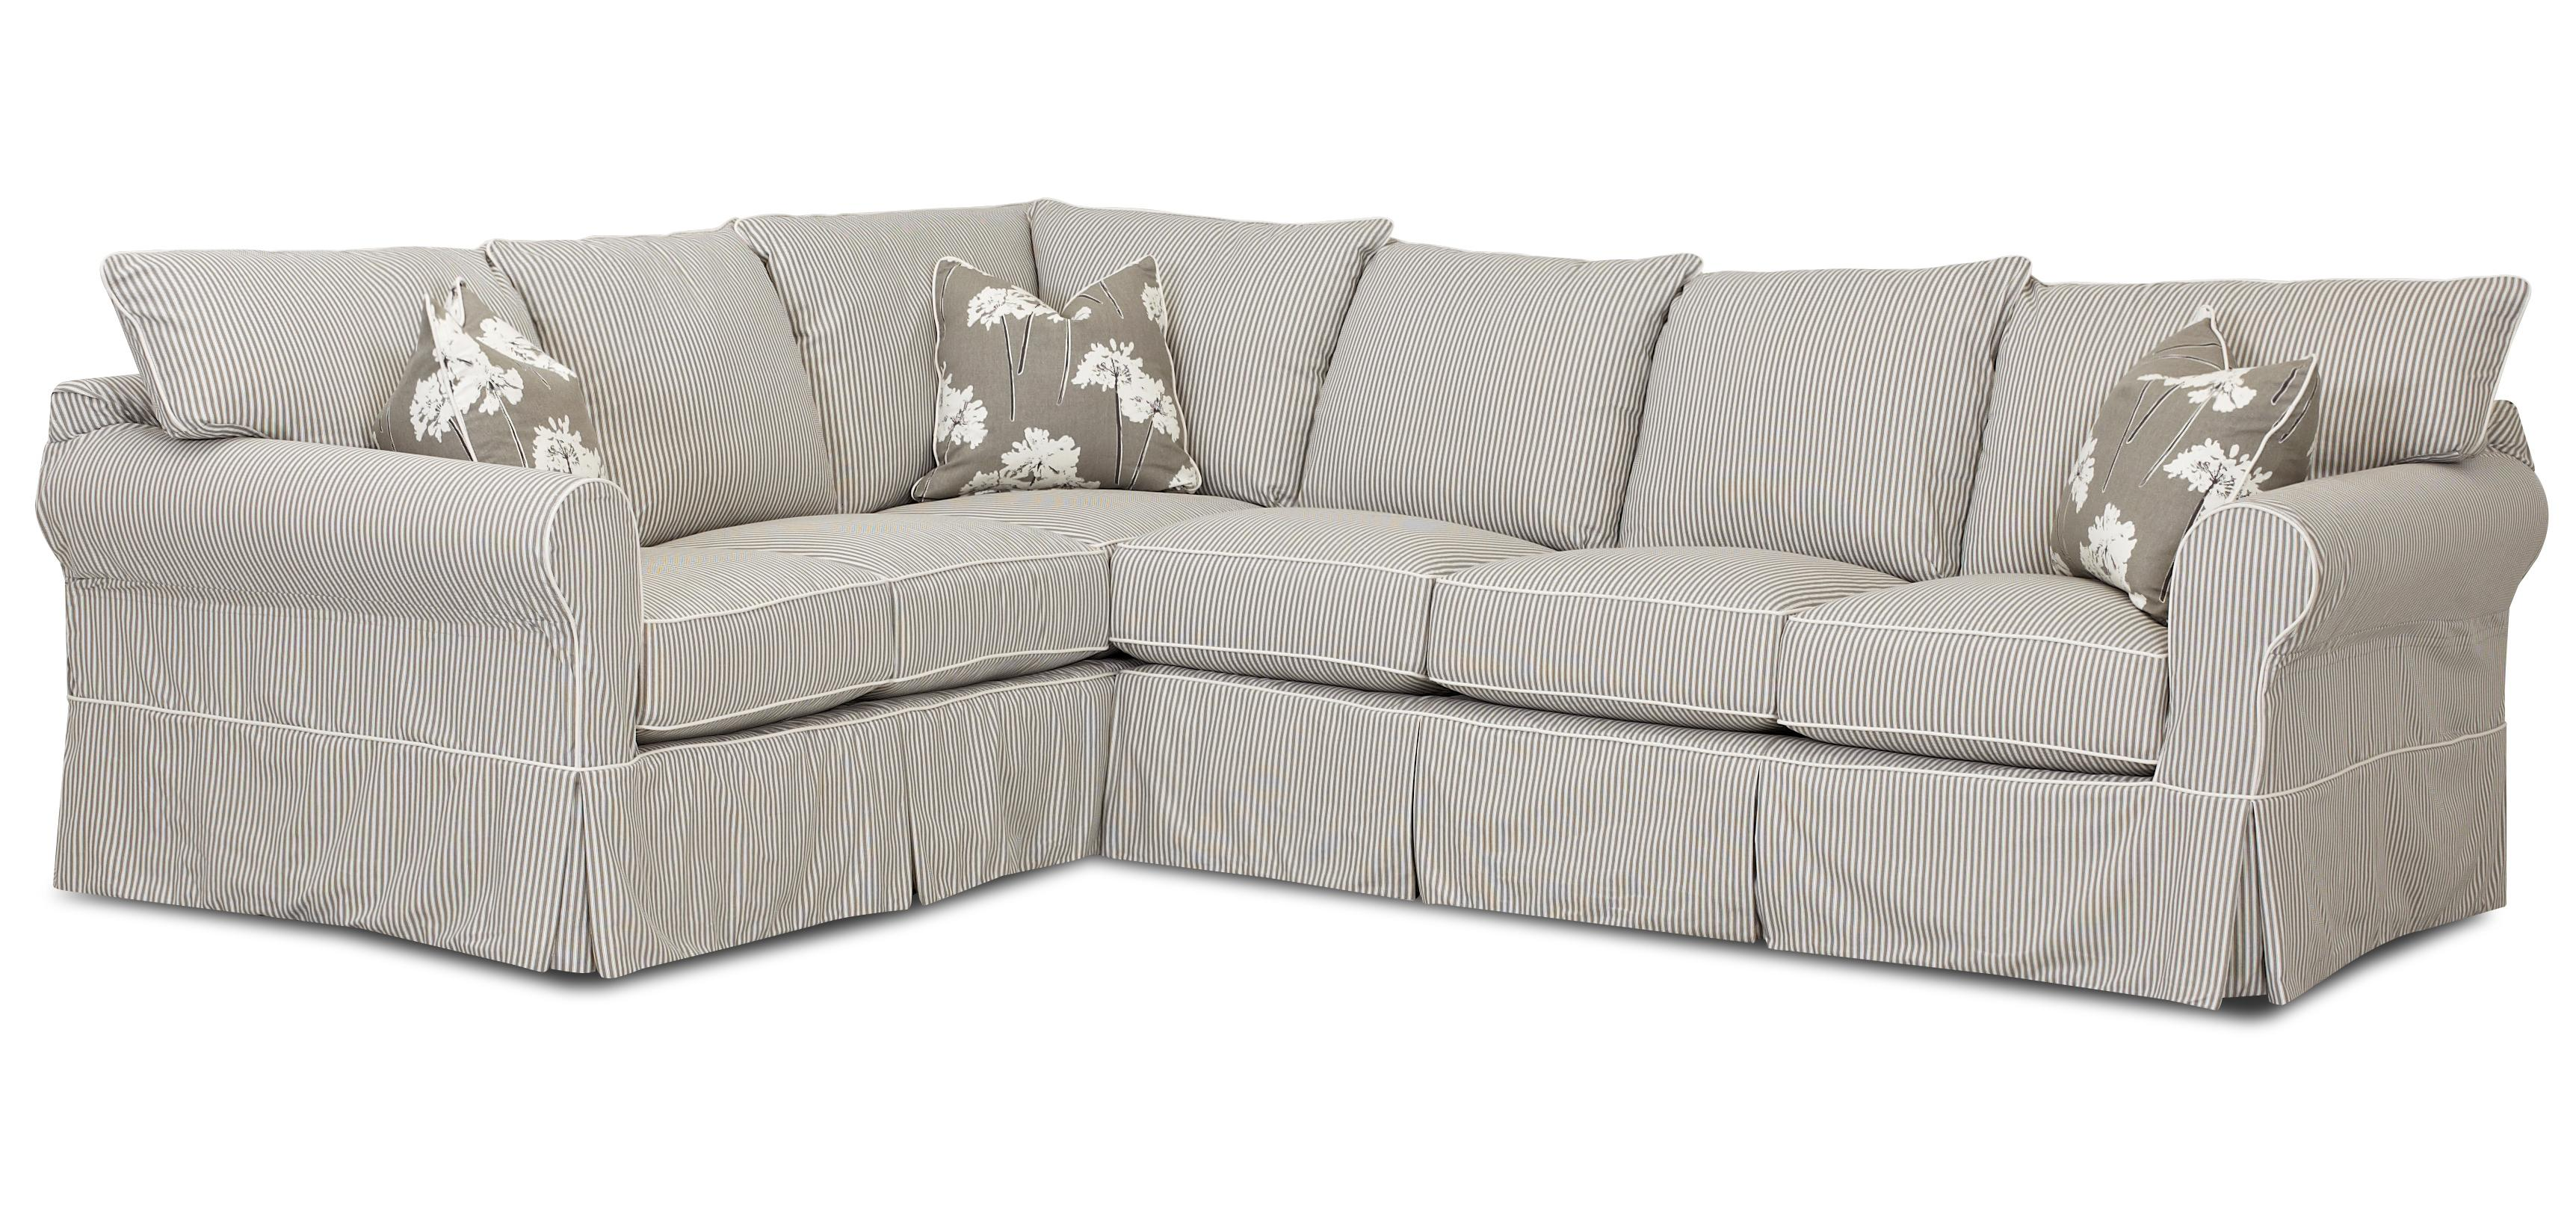 Jenny Transitional 2 Piece Sectional Sofa by Klaussner at Northeast Factory Direct